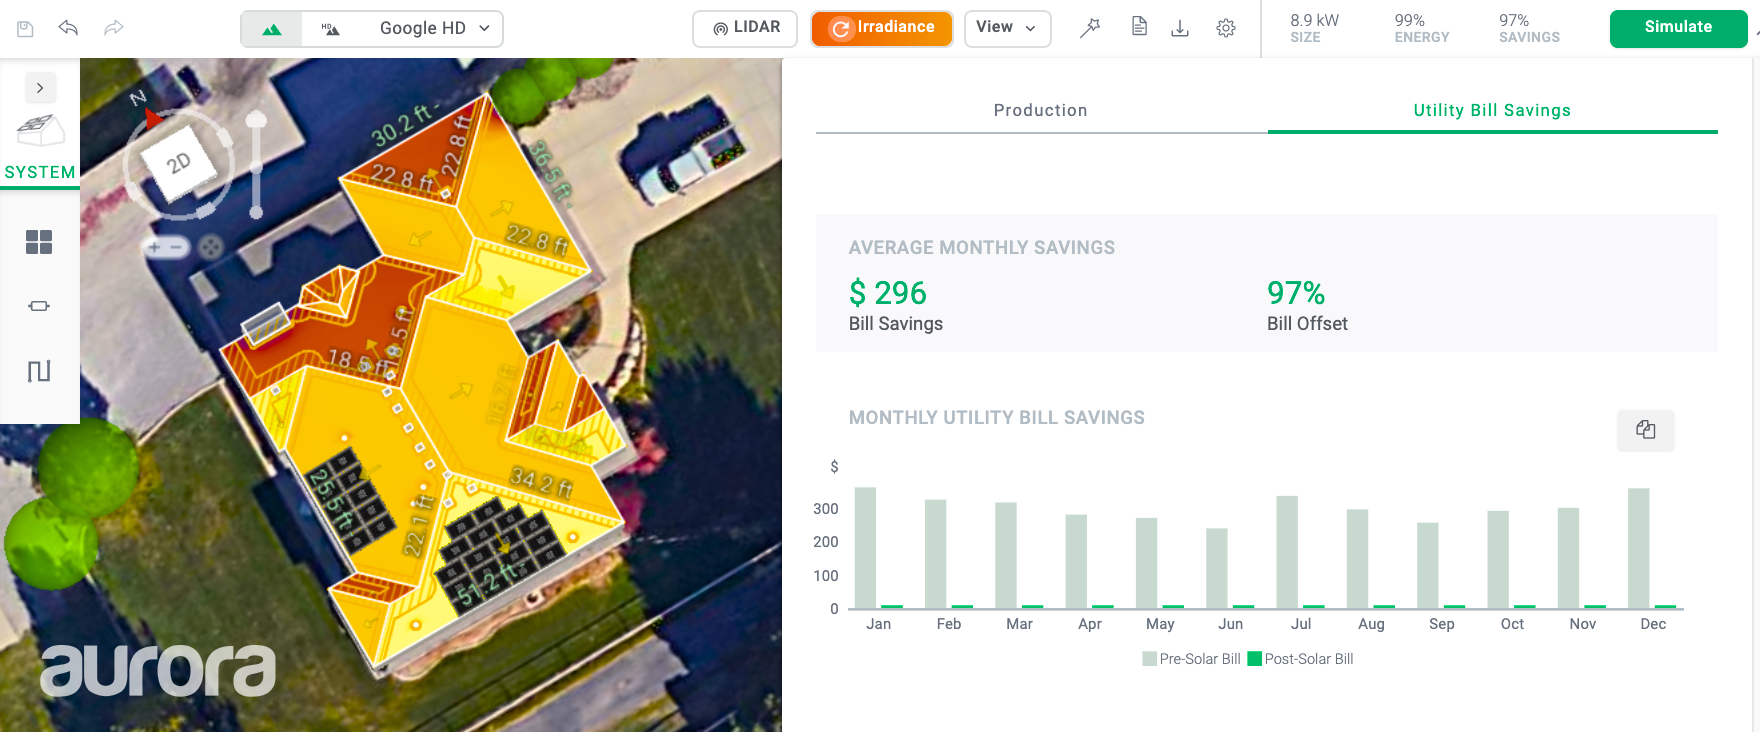 An interface showing a solar roof design and power savings.